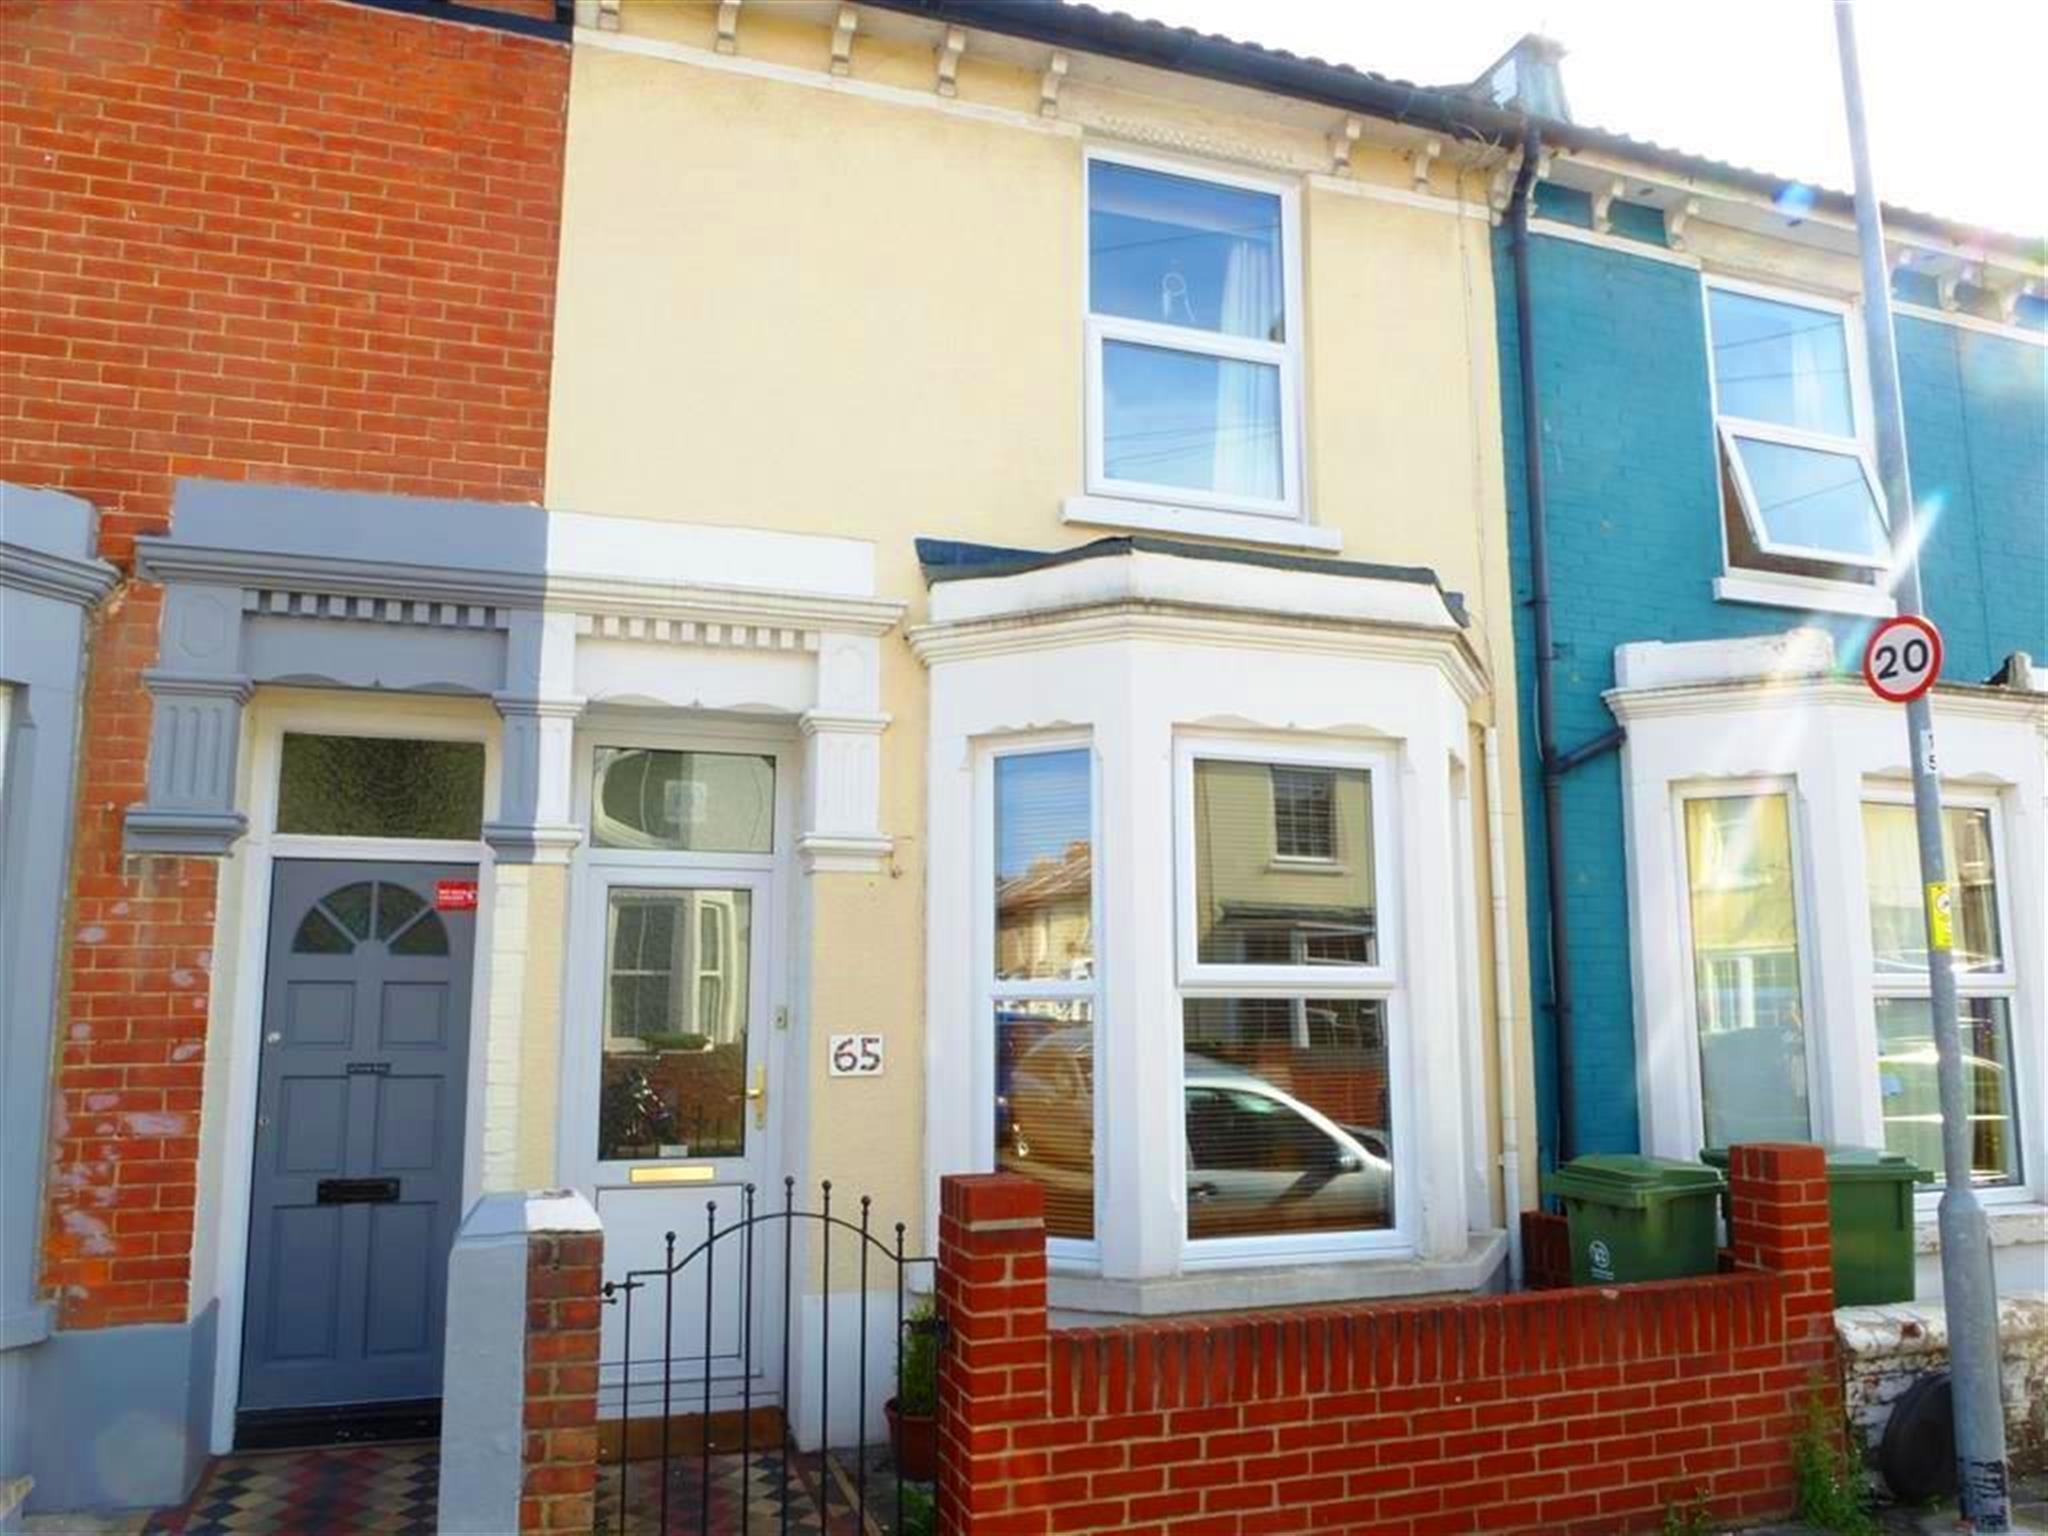 Is 747 A Good Credit Score >> 2 bedroom house to rent, Westfield Road, Southsea, PO4 9EP – TheHouseShop.com